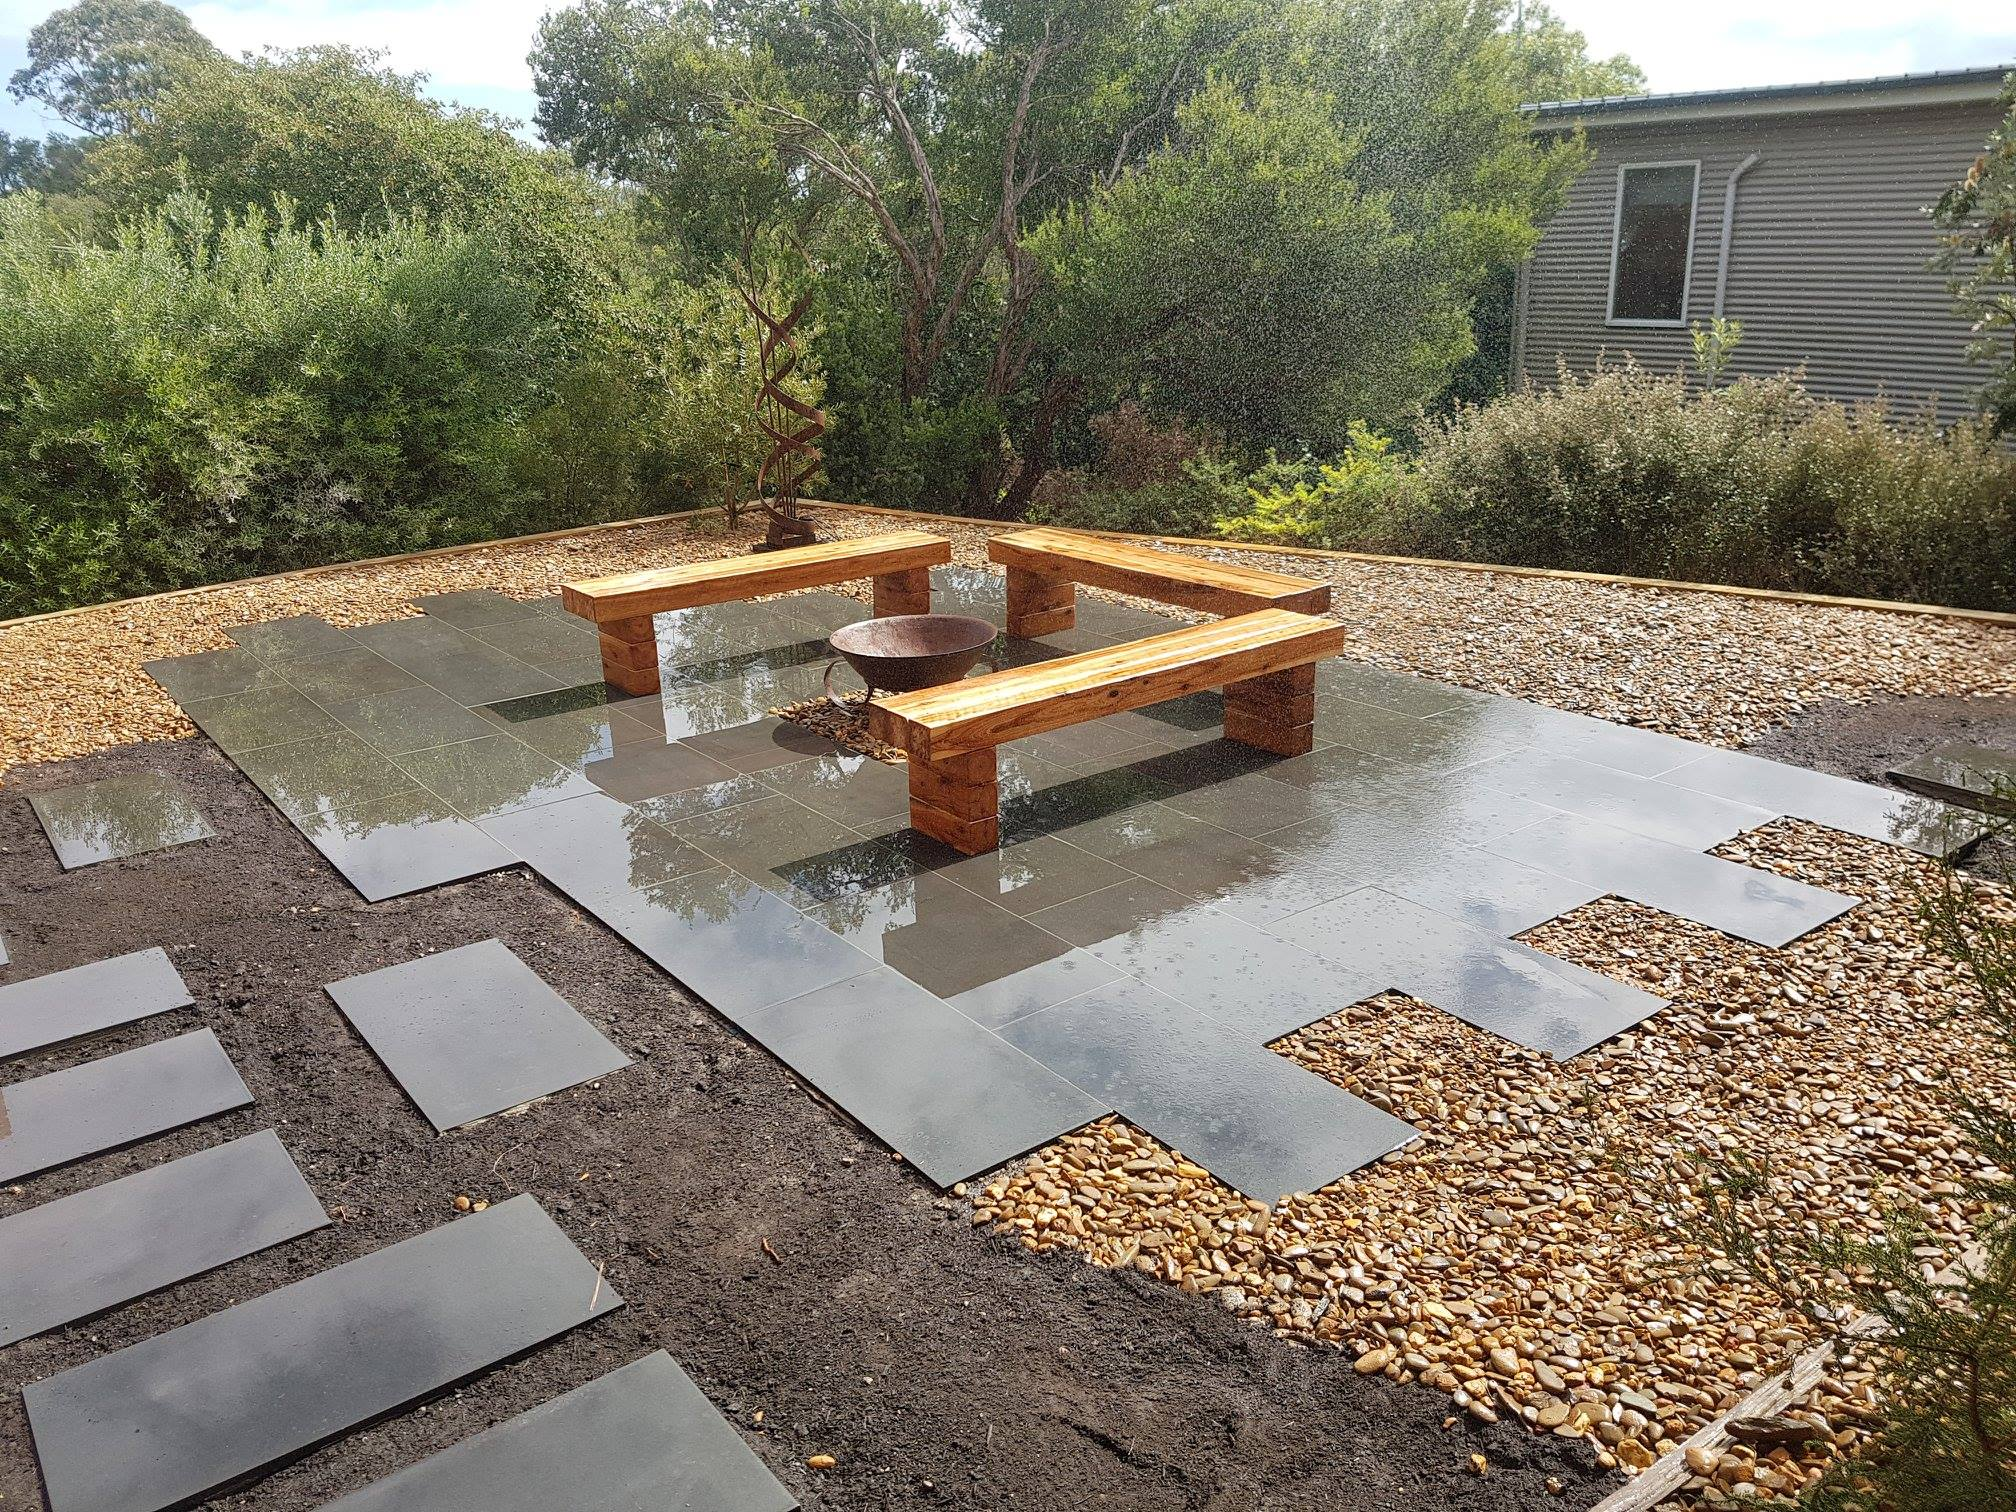 fourseasons garden landscaping Mornington